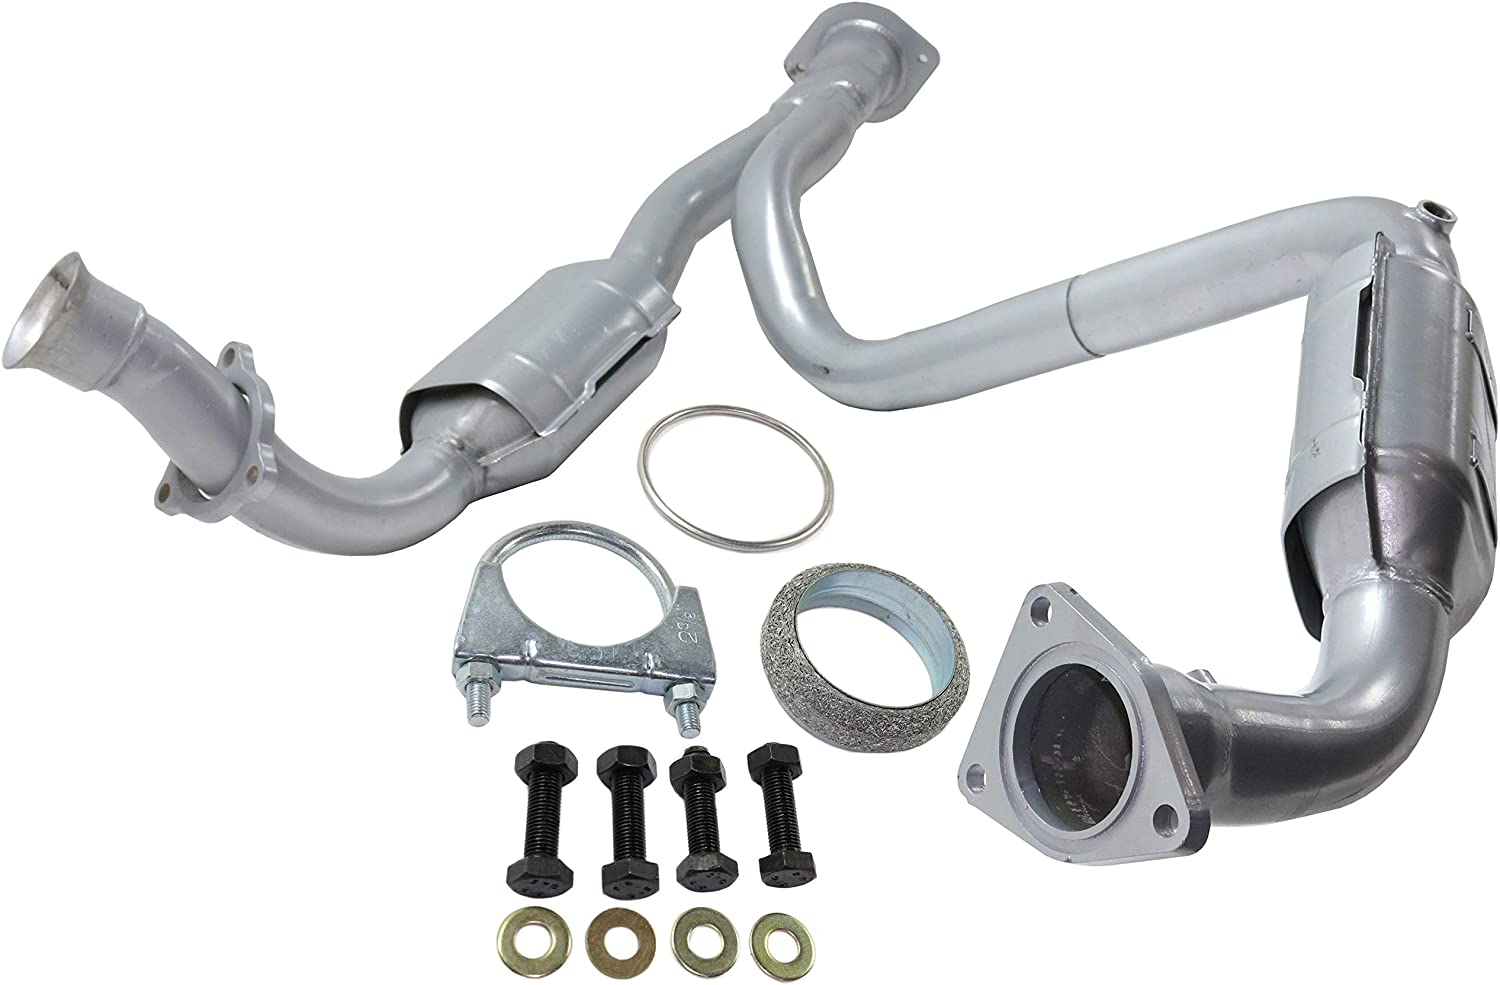 Outlet Upstream and Downstream at 50.5 inches Overall Length 2-bolt welded flange Catalytic Converter Compatible with 1999-2005 Chevrolet Silverado 1500//2000-2006 Tahoe Single